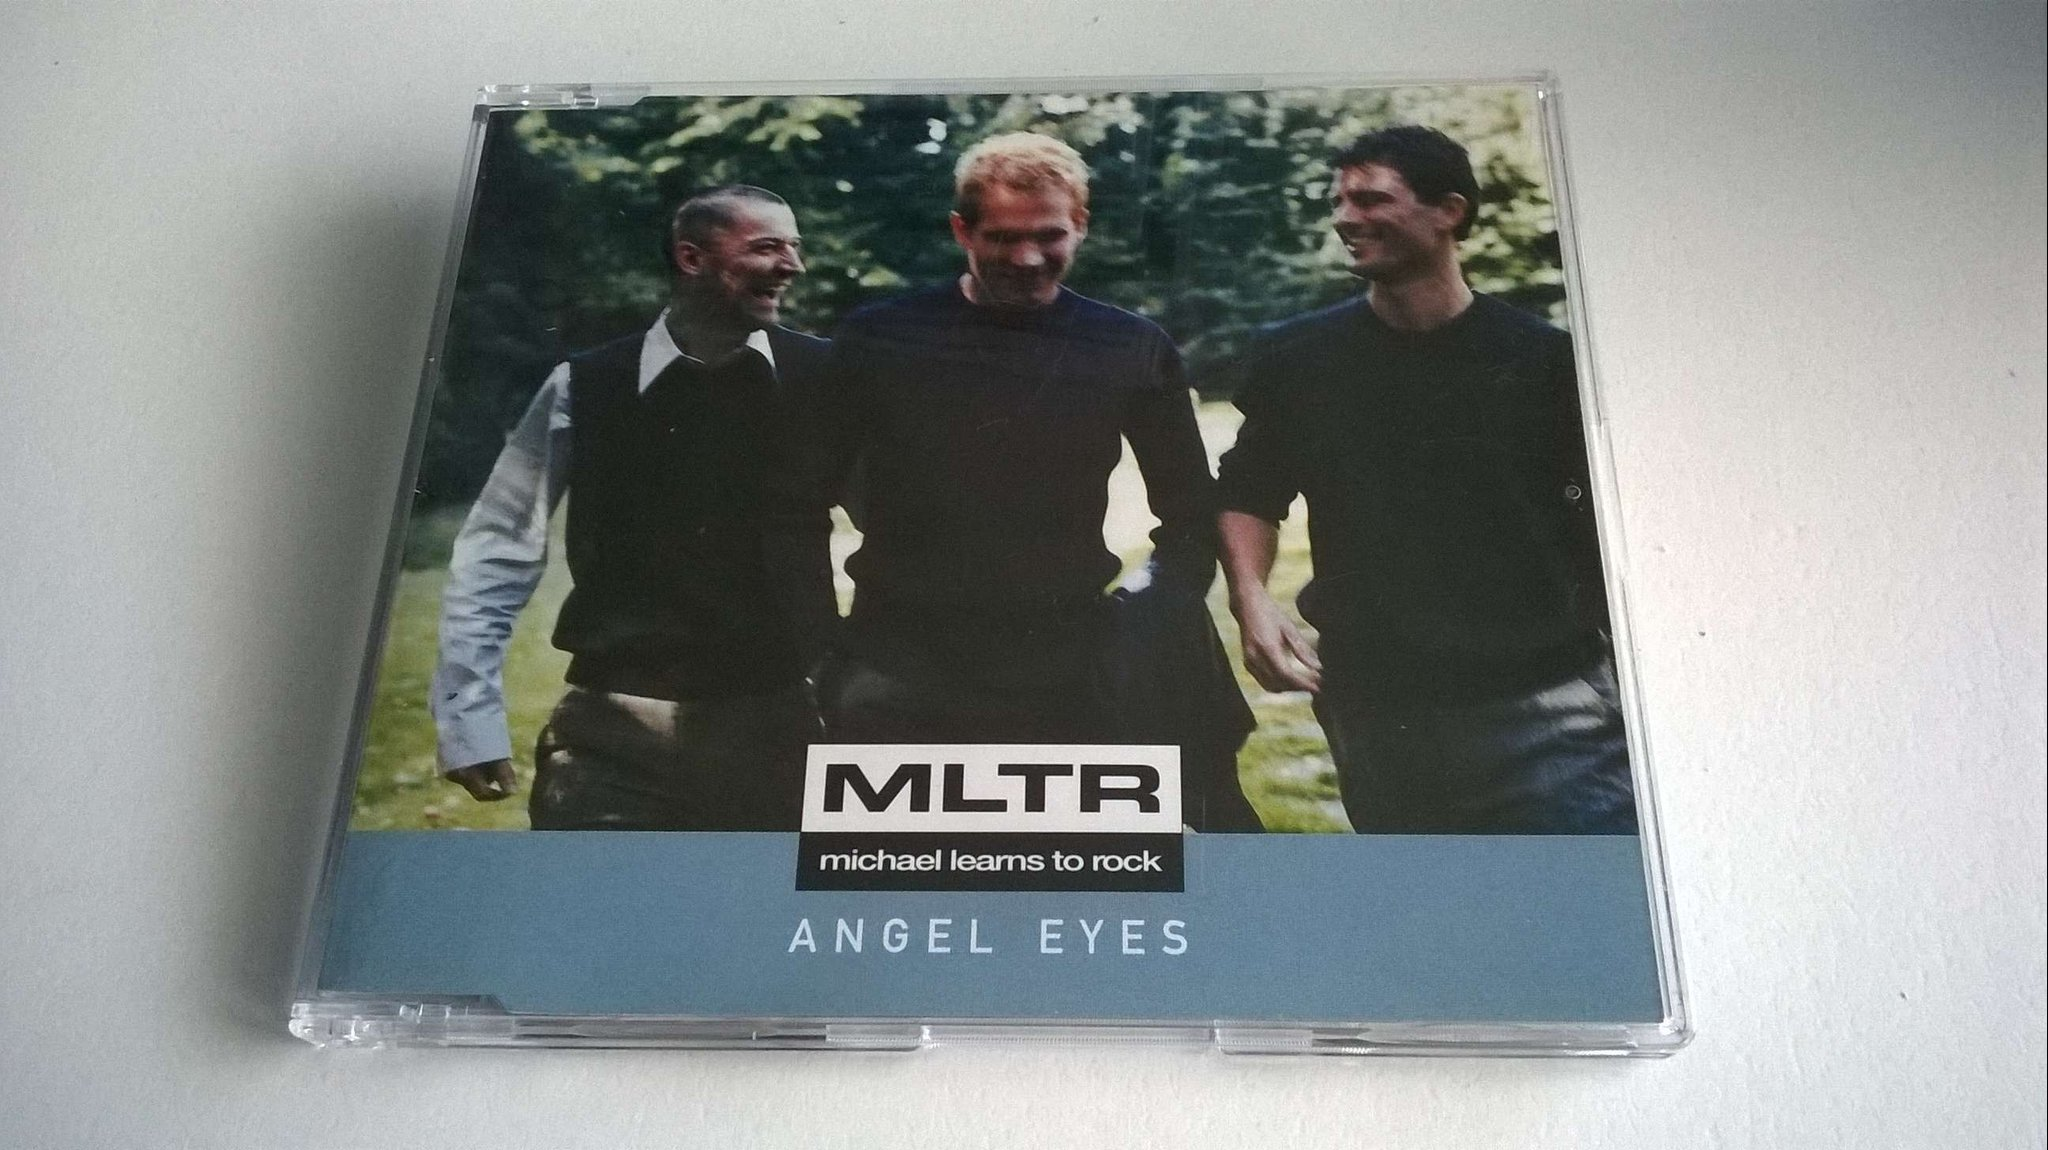 Michael Learns To Rock  - Angel Eyes, CD, Single, promotion